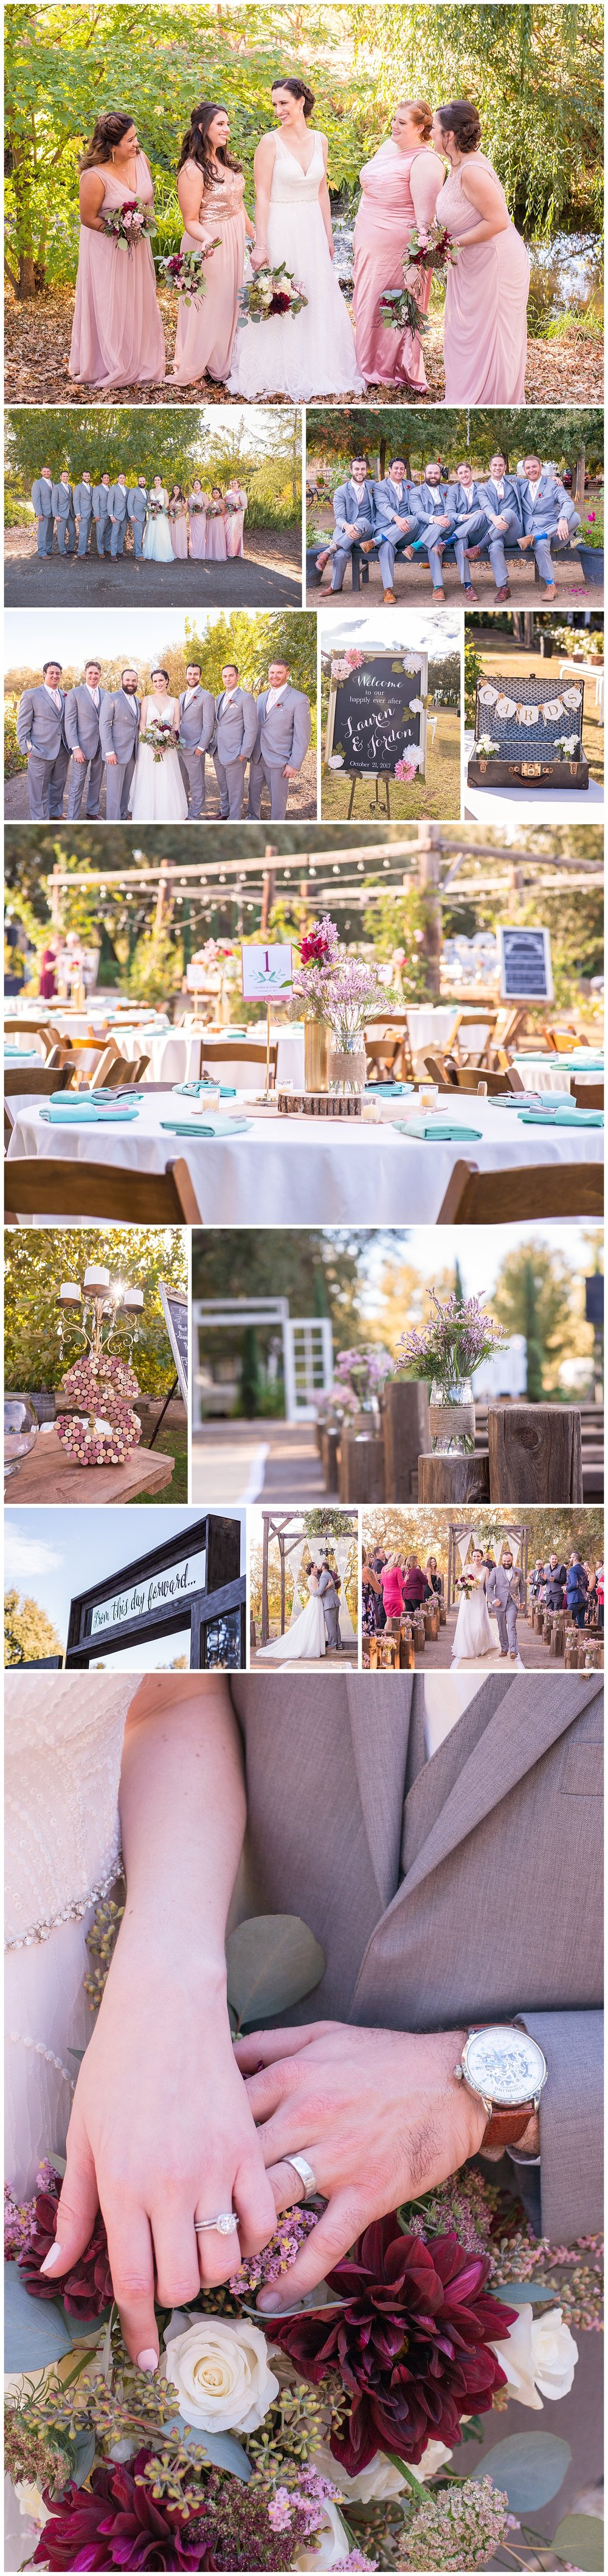 The-530-Bride_chico-wedding-planner_Bella-Rosa-Farms